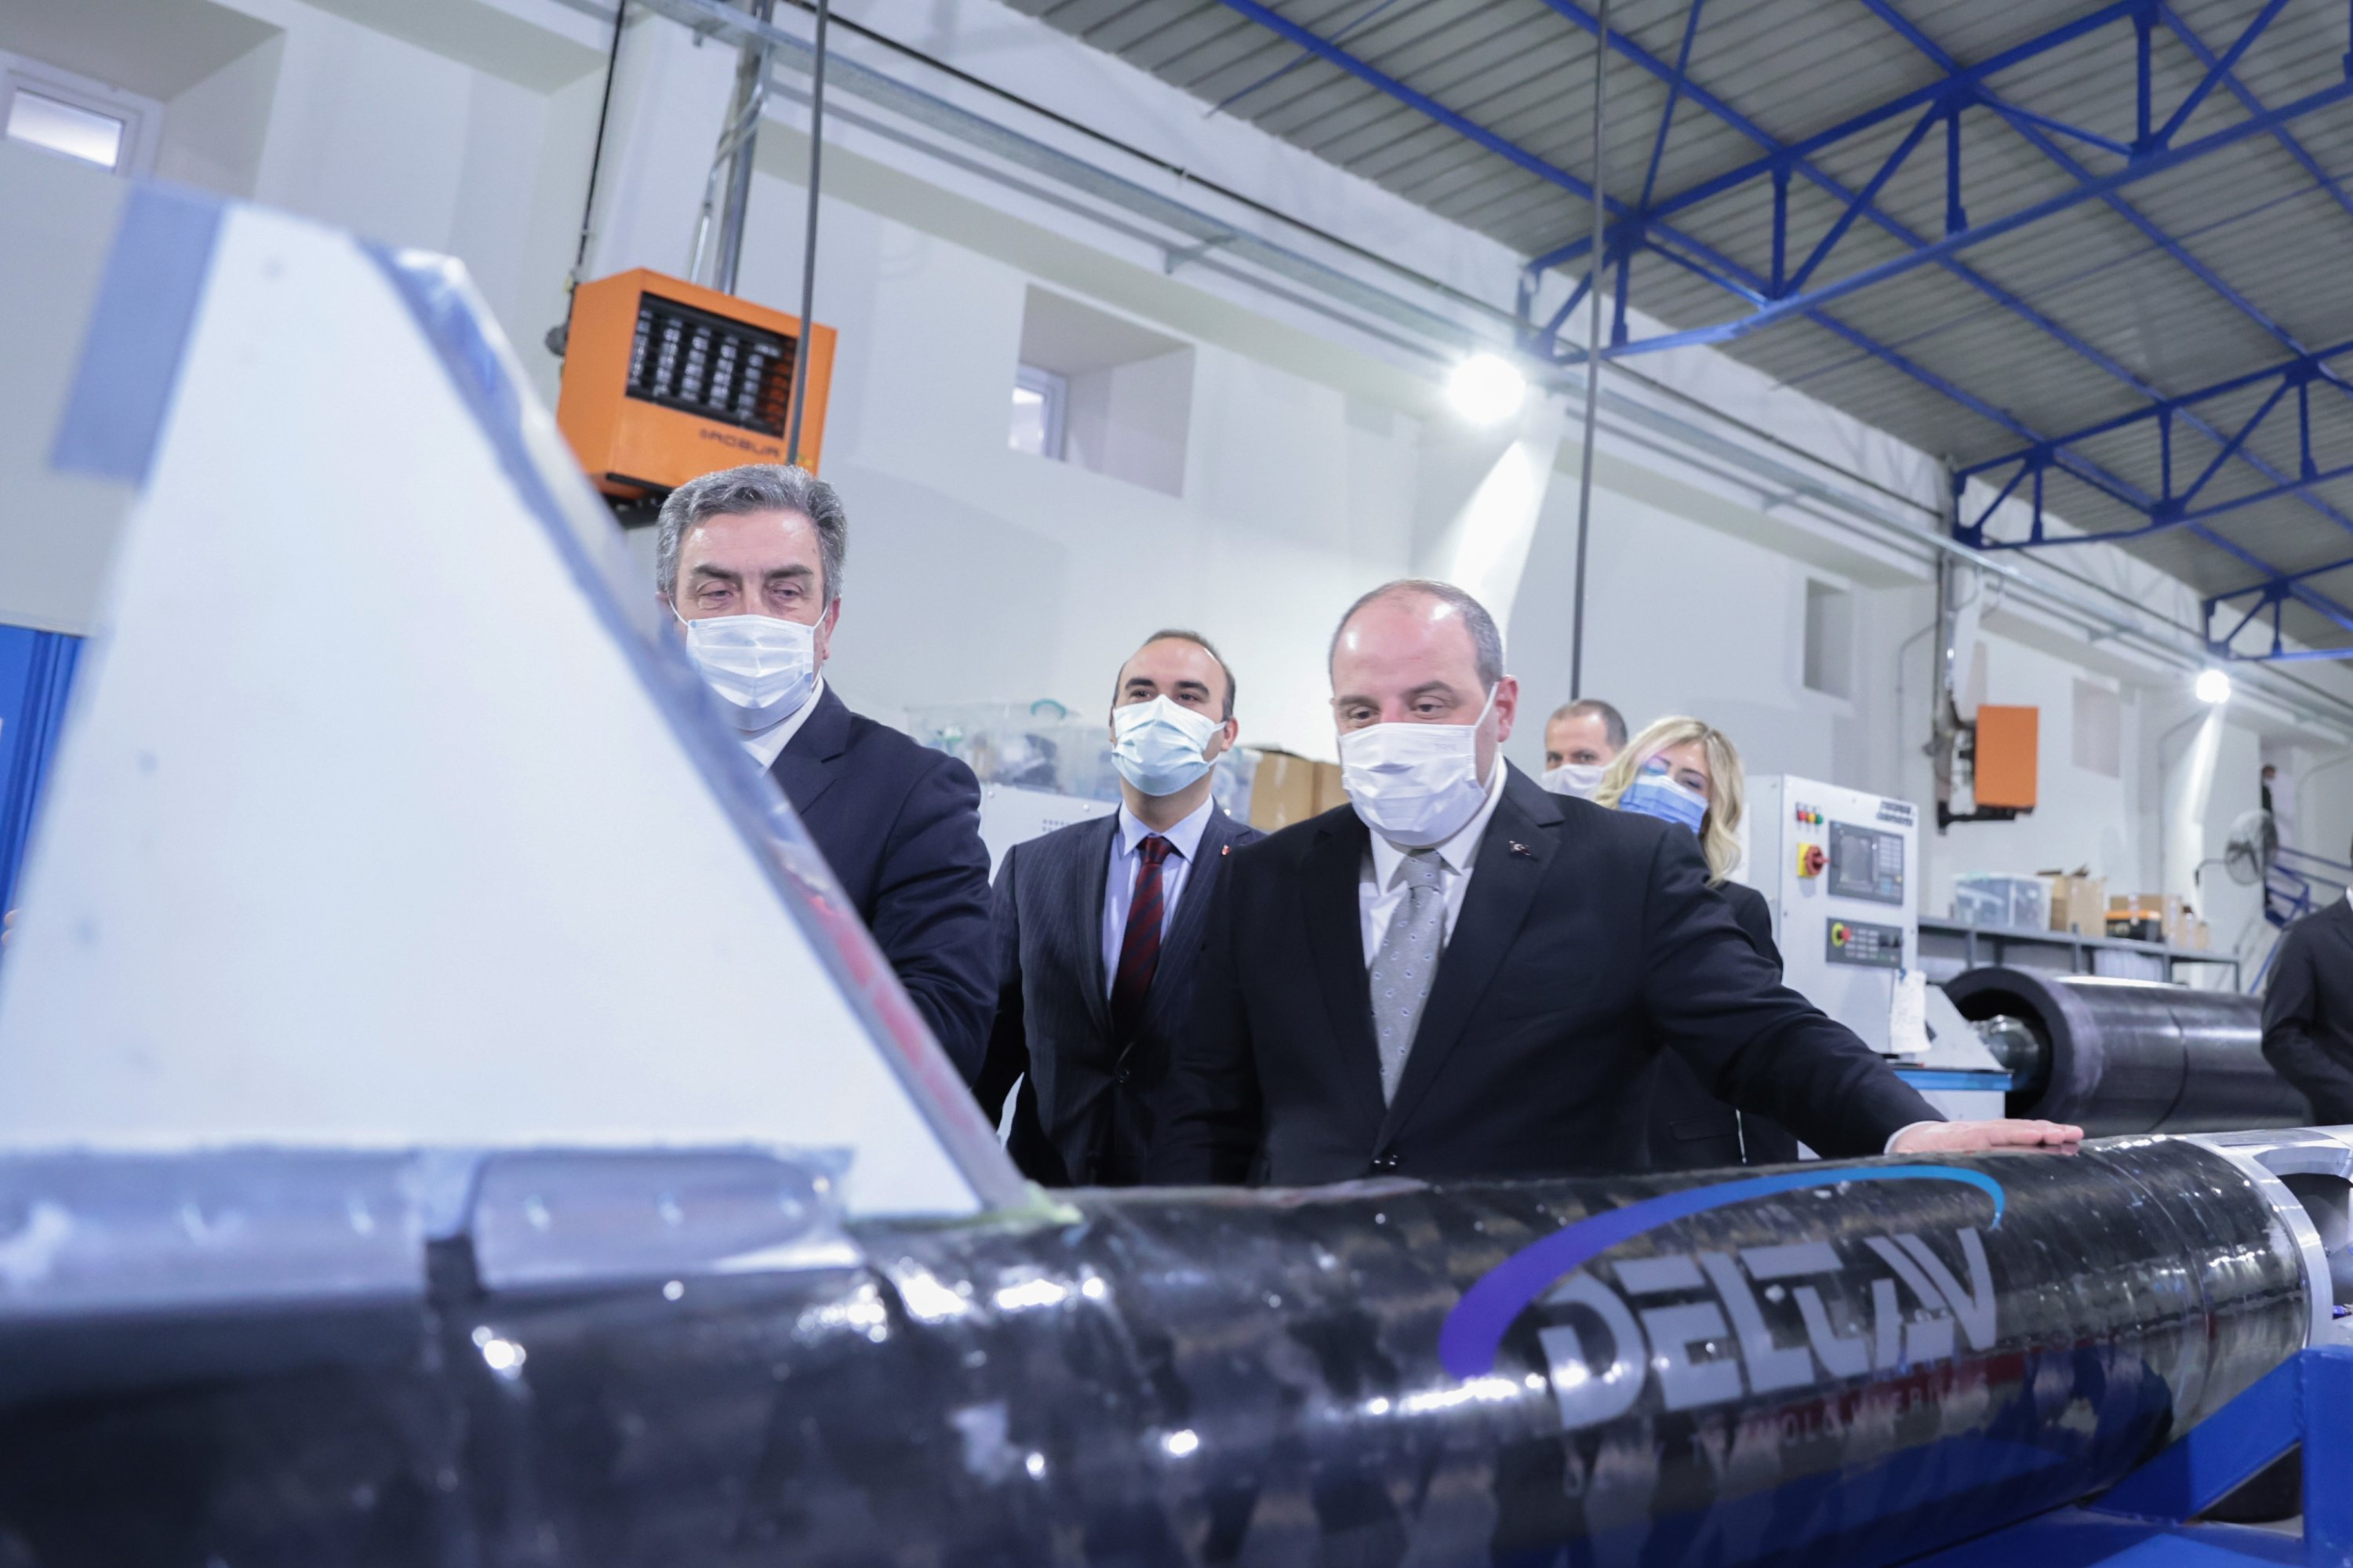 Industry and Technology Minister Mustafa Varank during a visit to Delta V Space Technologies' facilities in Istanbul, Turkey, Feb. 28, 2021. (AA Photo)